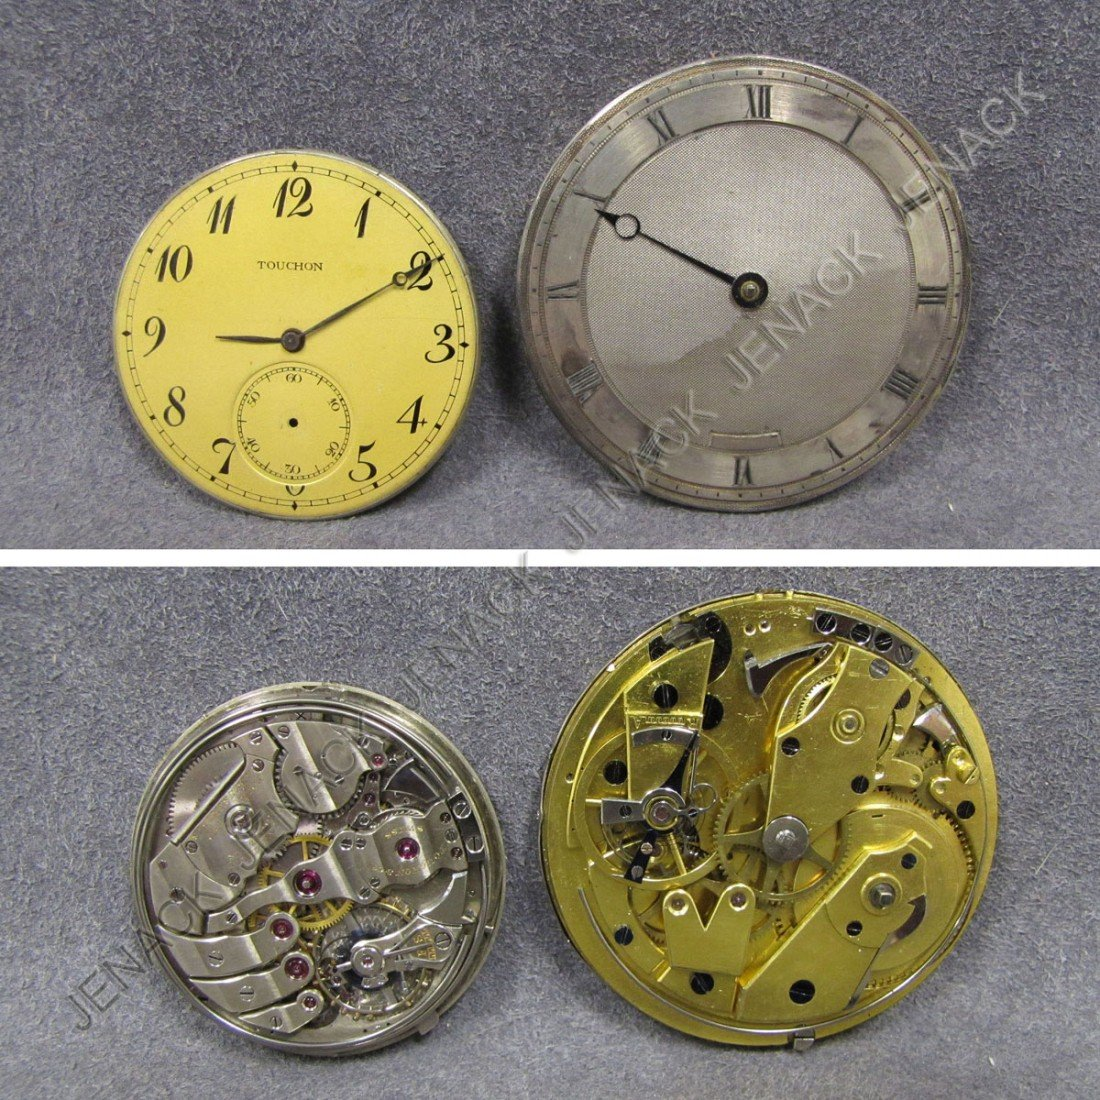 58: LOT (2) VINTAGE REPEATING POCKET WATCH MOVEMENTS